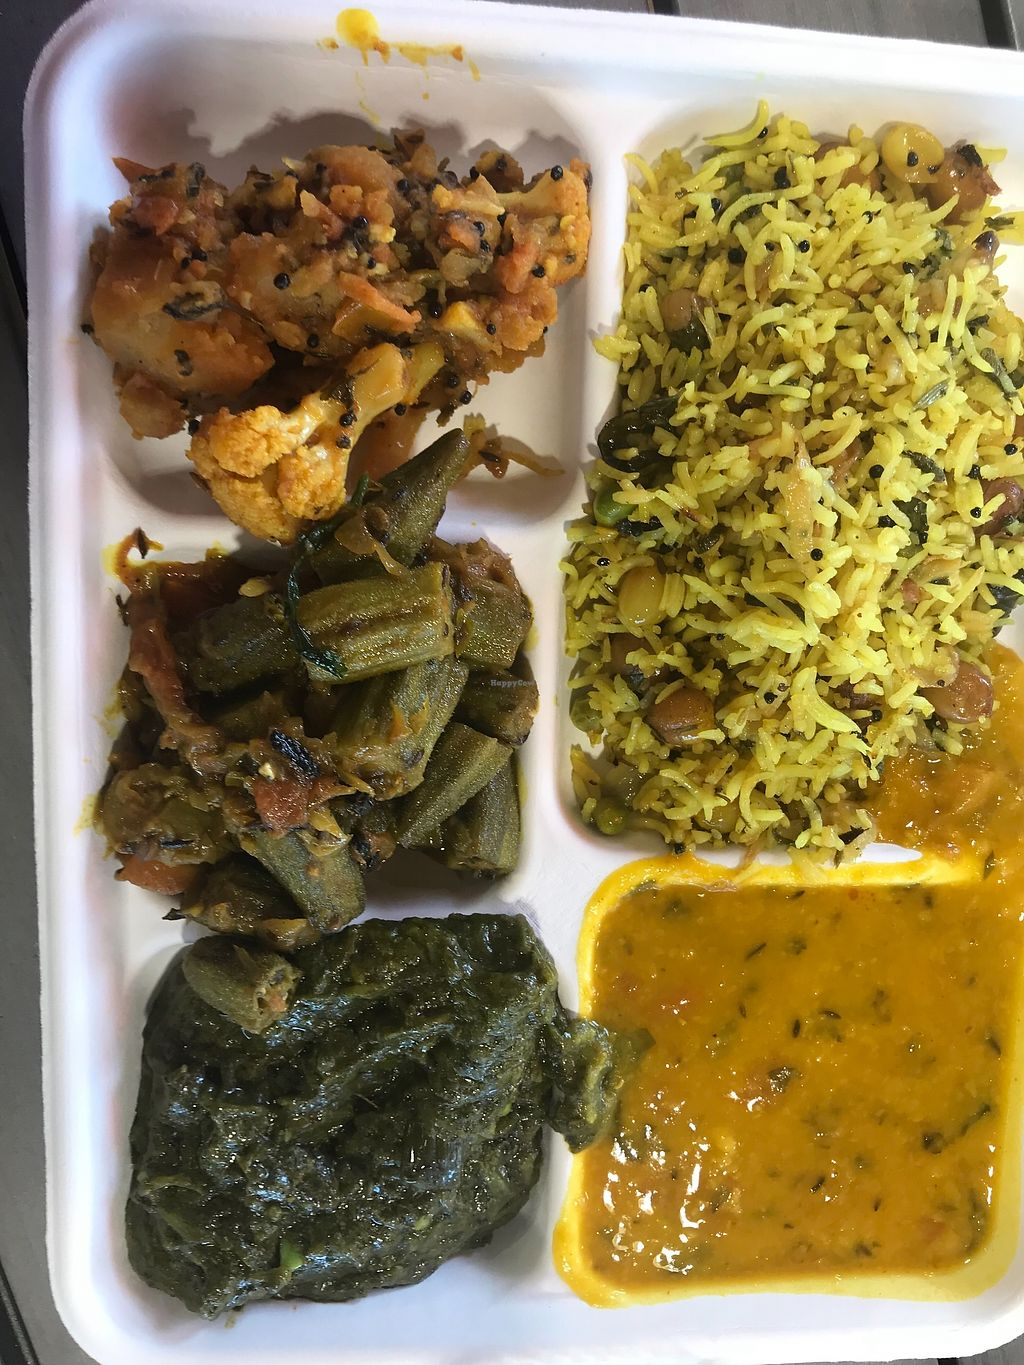 """Photo of Namaste Spiceland  by <a href=""""/members/profile/animalattorney"""">animalattorney</a> <br/>Vegan Options at Spiceland Lunch =) <br/> February 13, 2018  - <a href='/contact/abuse/image/107206/358815'>Report</a>"""